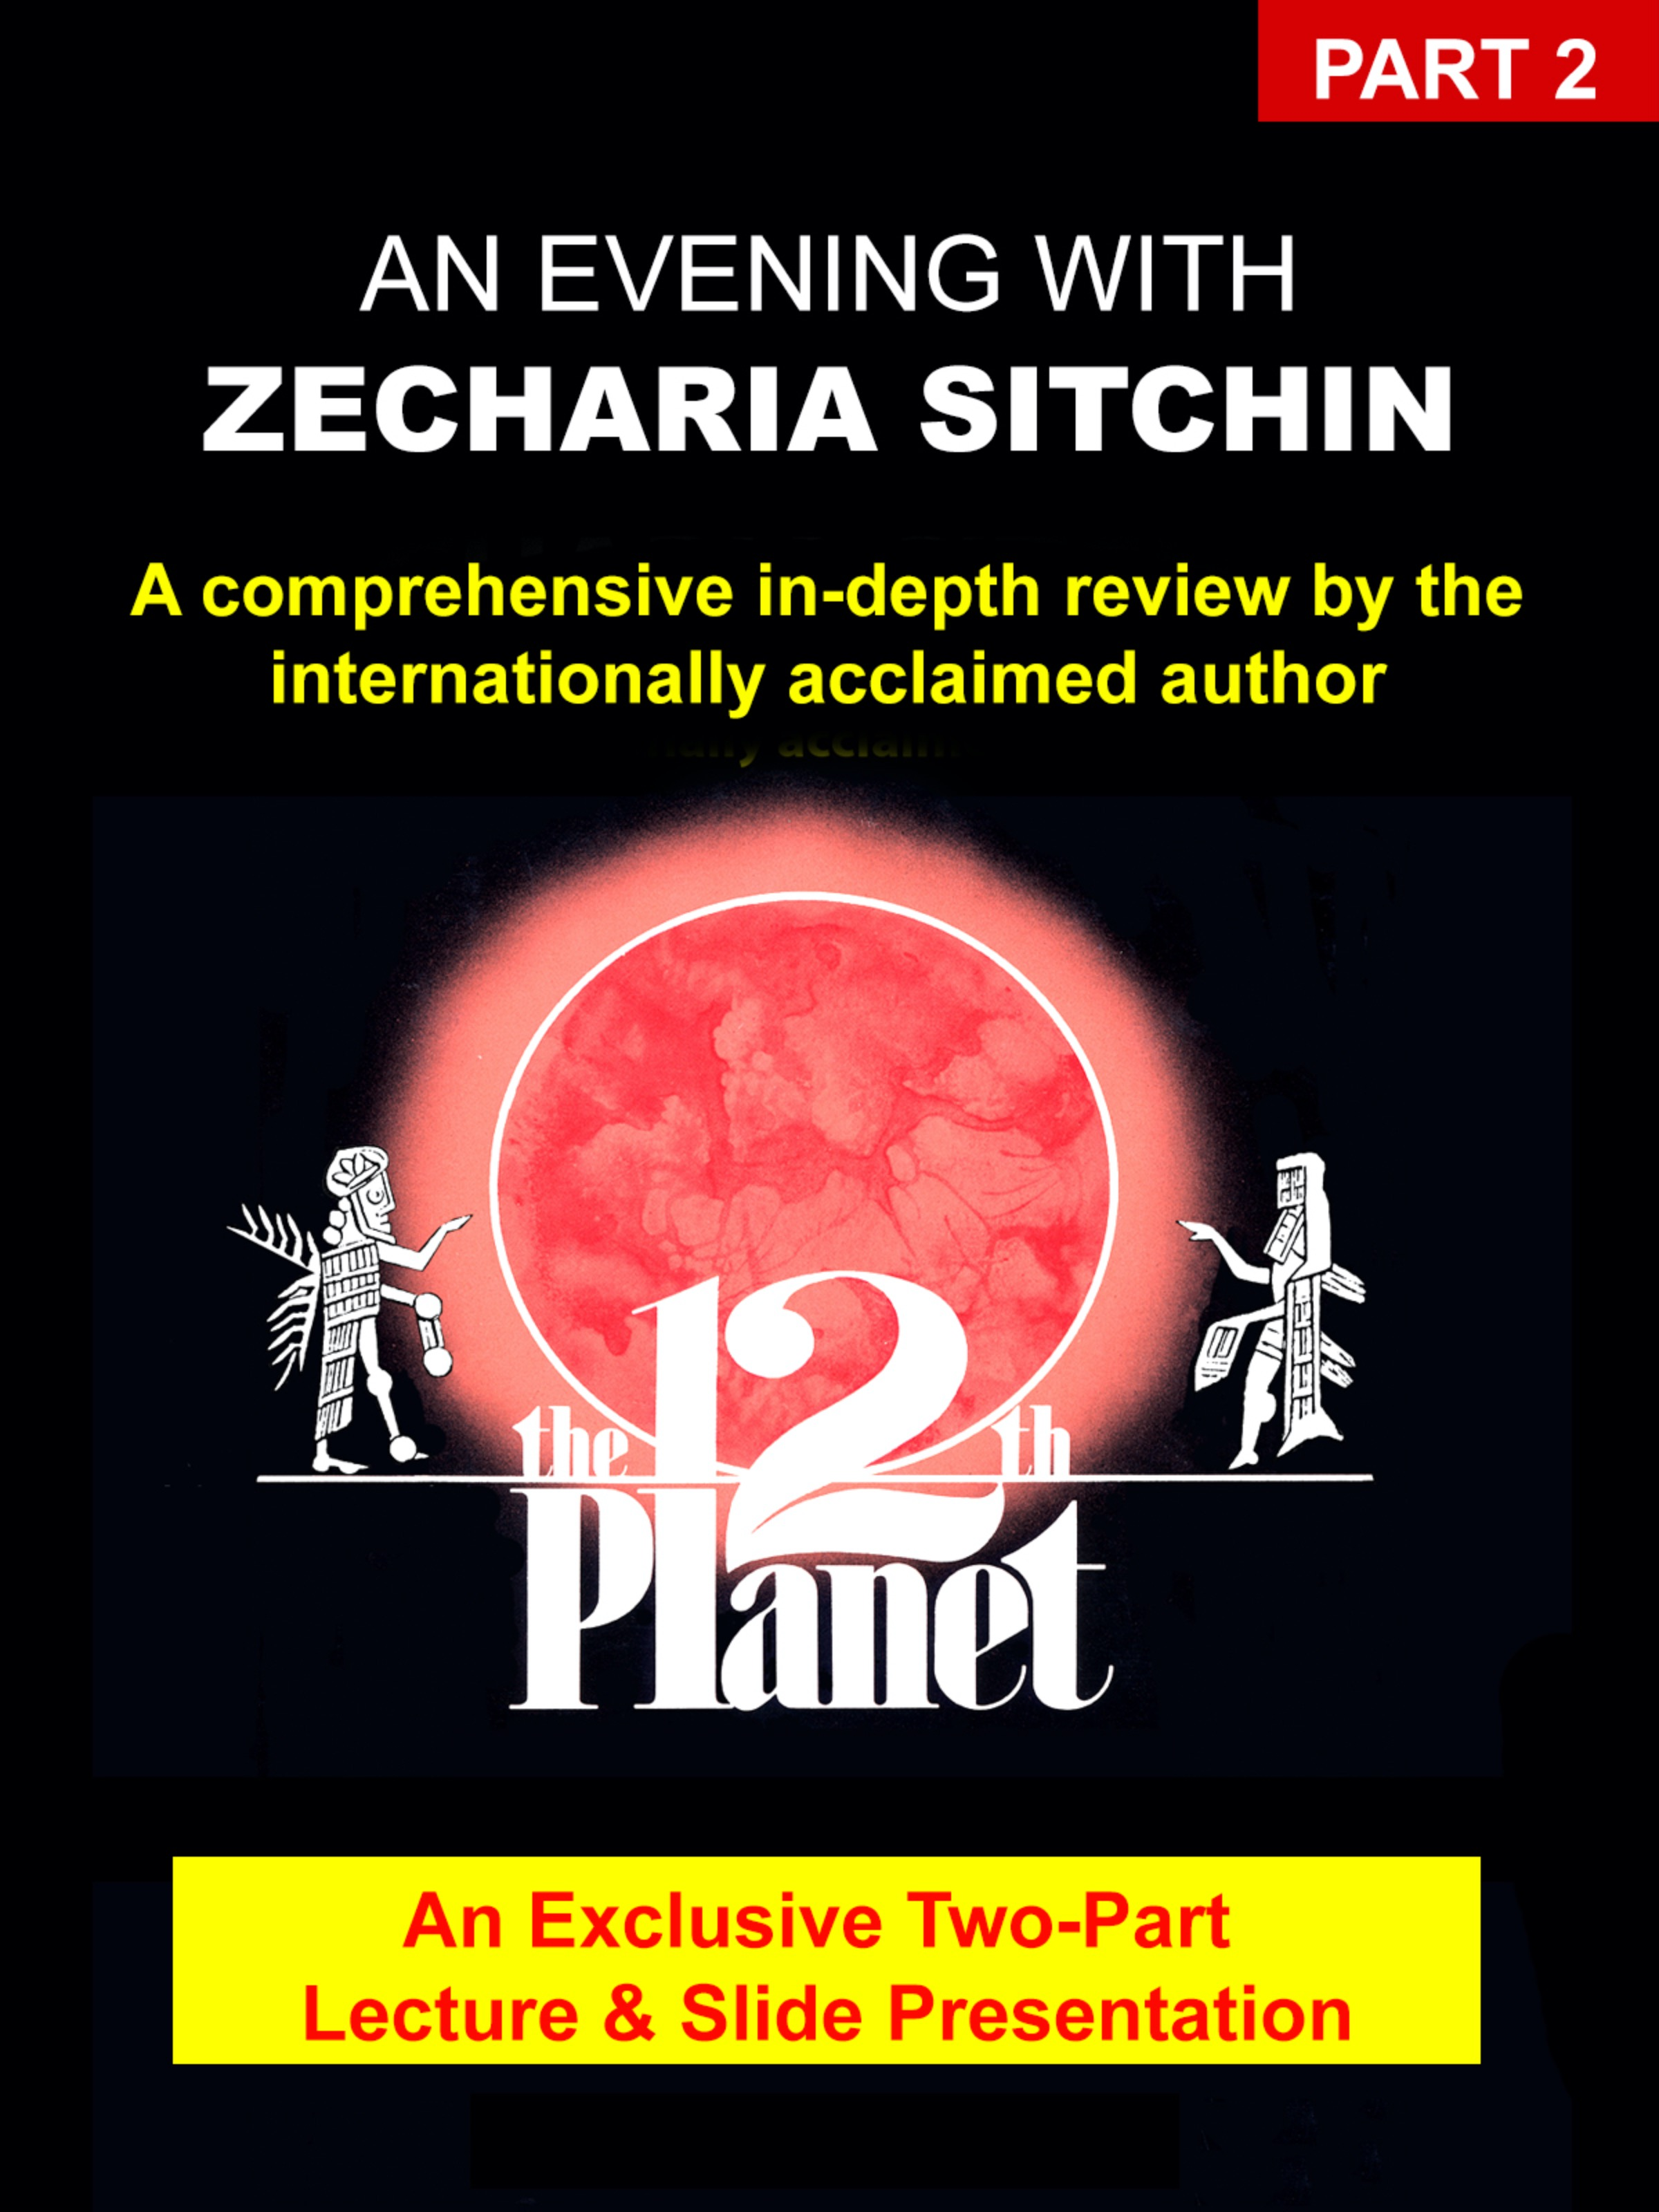 An Evening With Zecharia Sitchin - Part 2